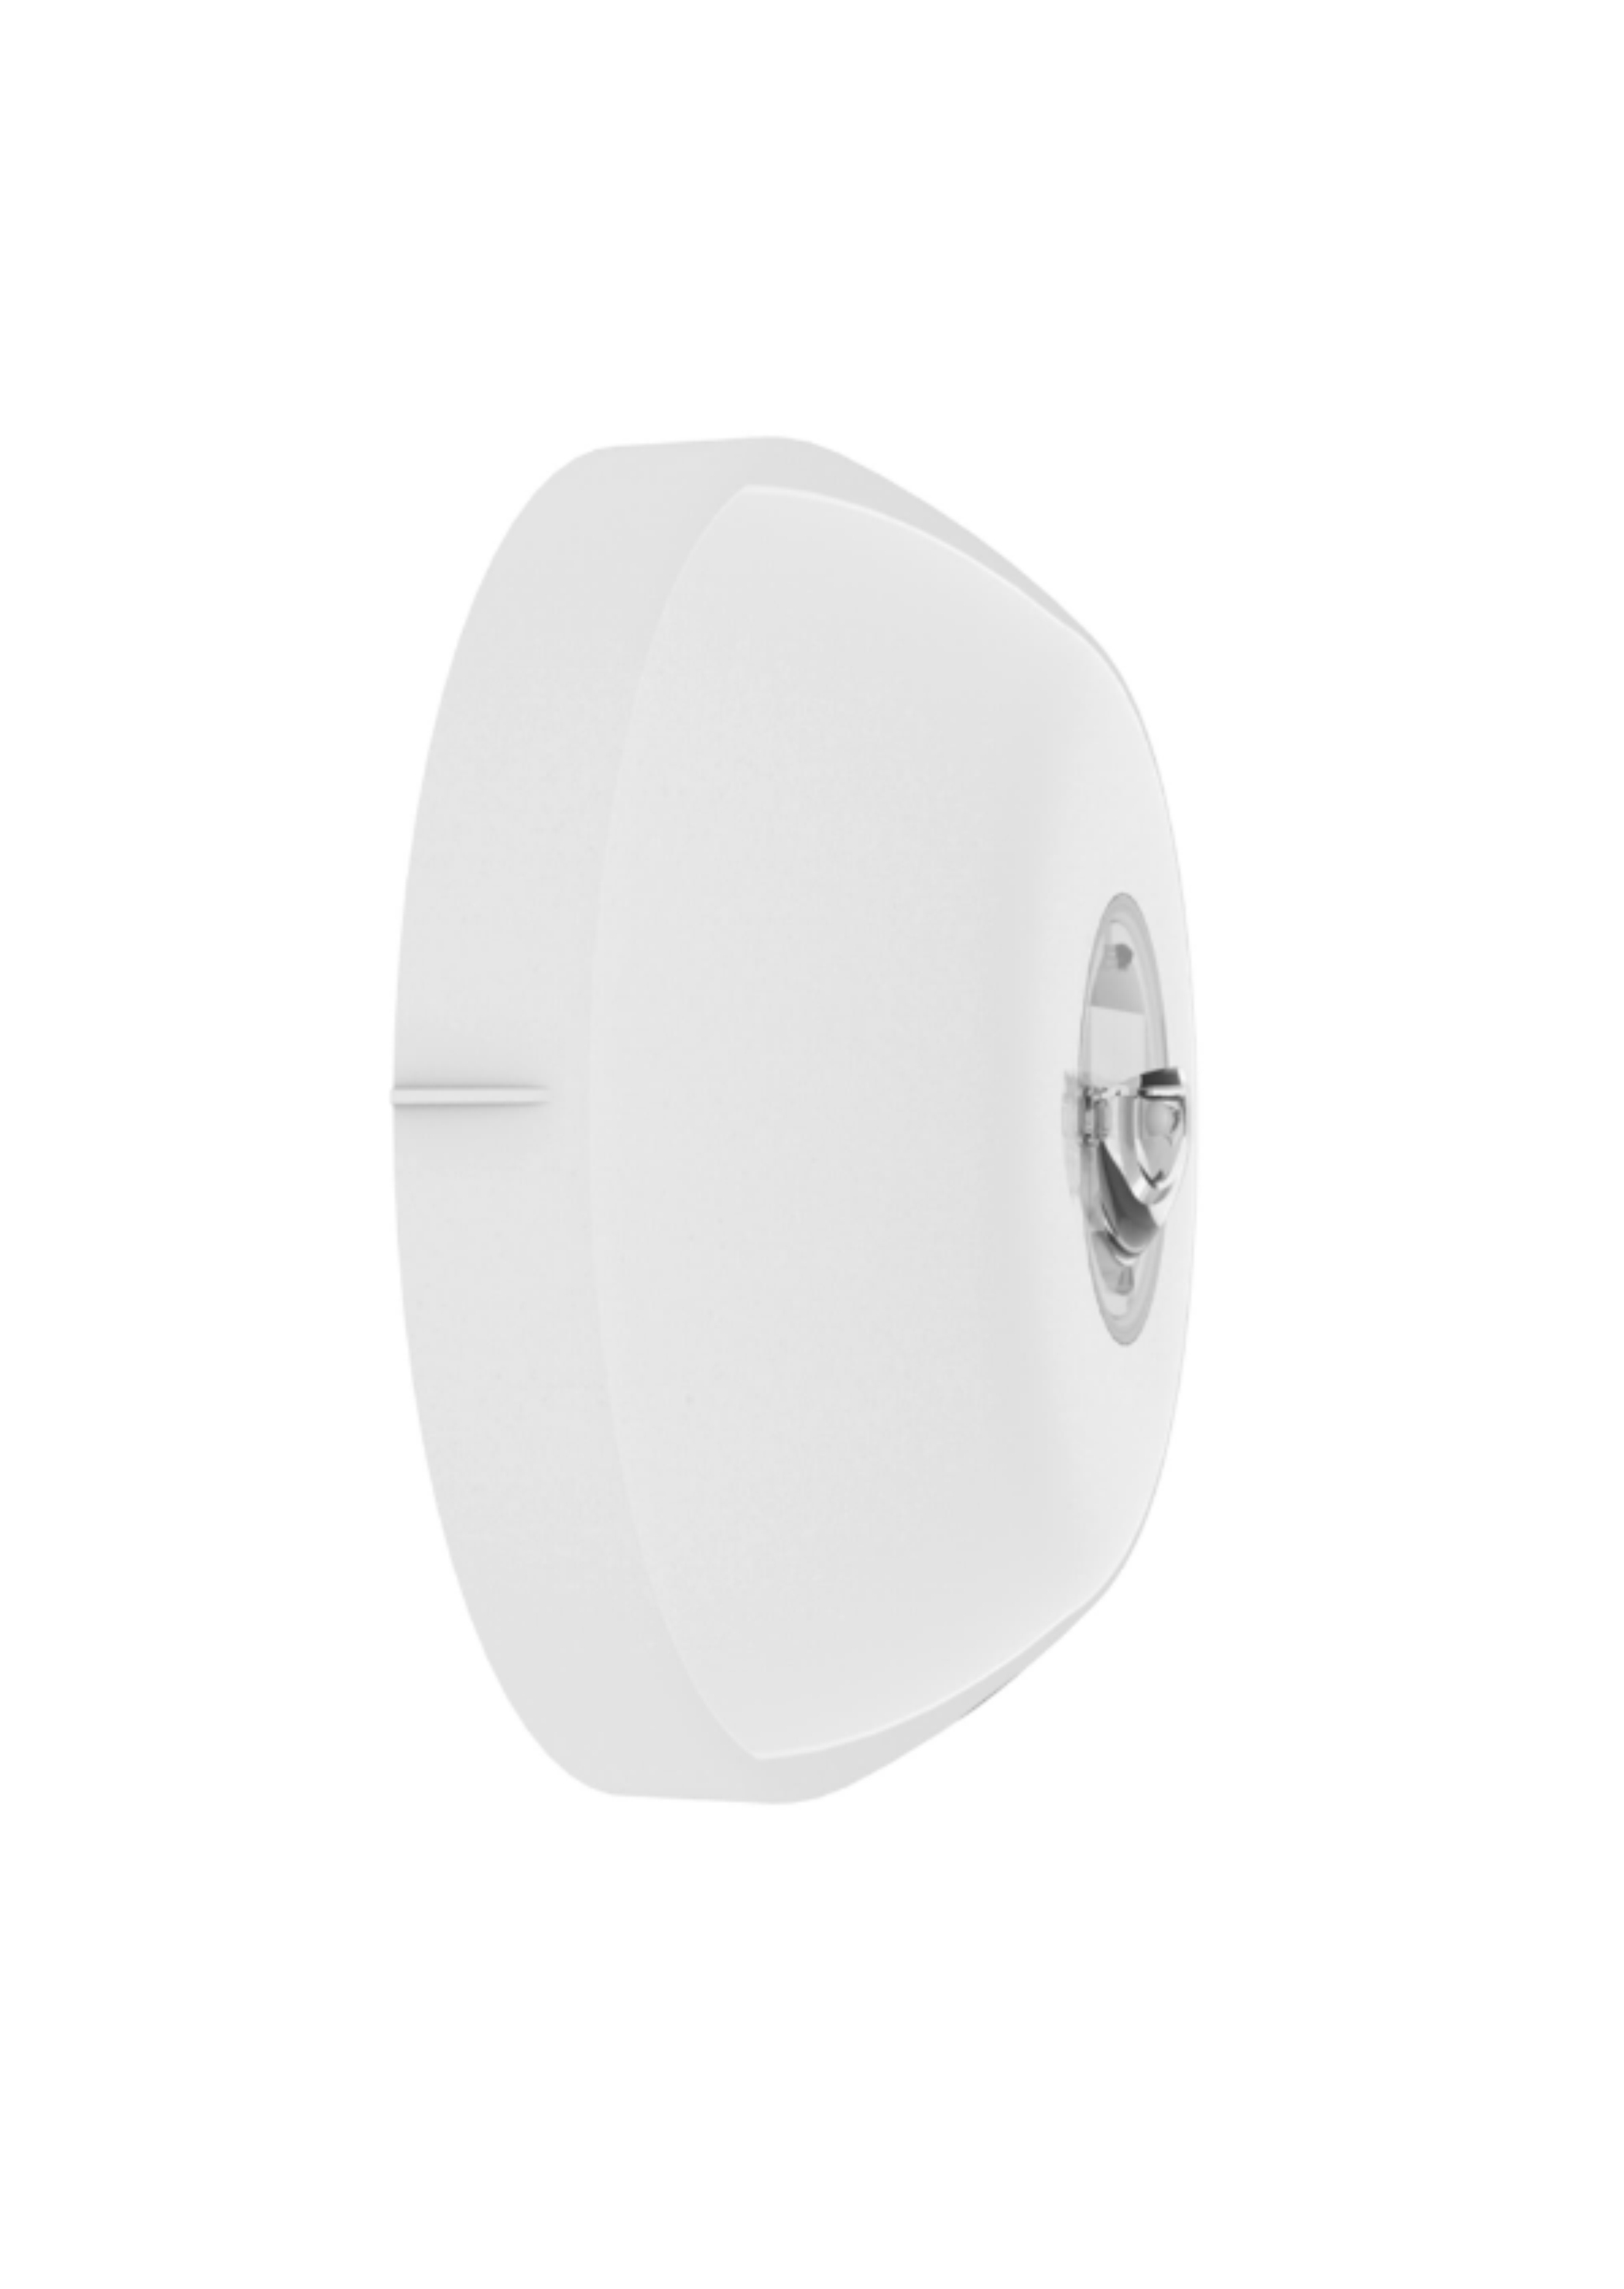 Wall Beacon - White case, red LEDs 1460340-20